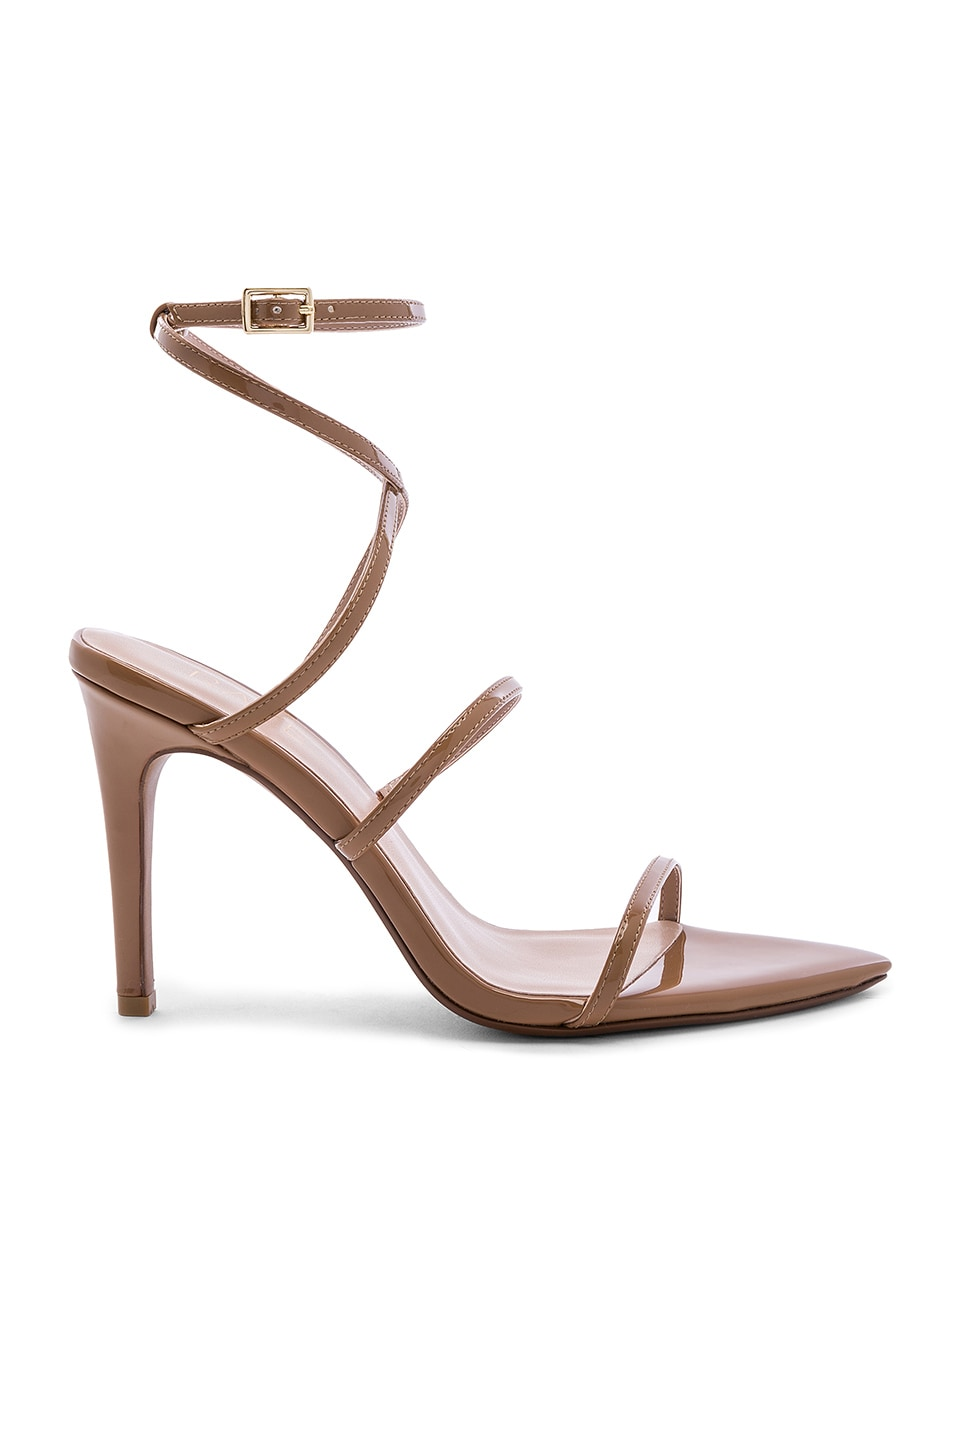 RAYE Caribbean Heel in Dark Tan